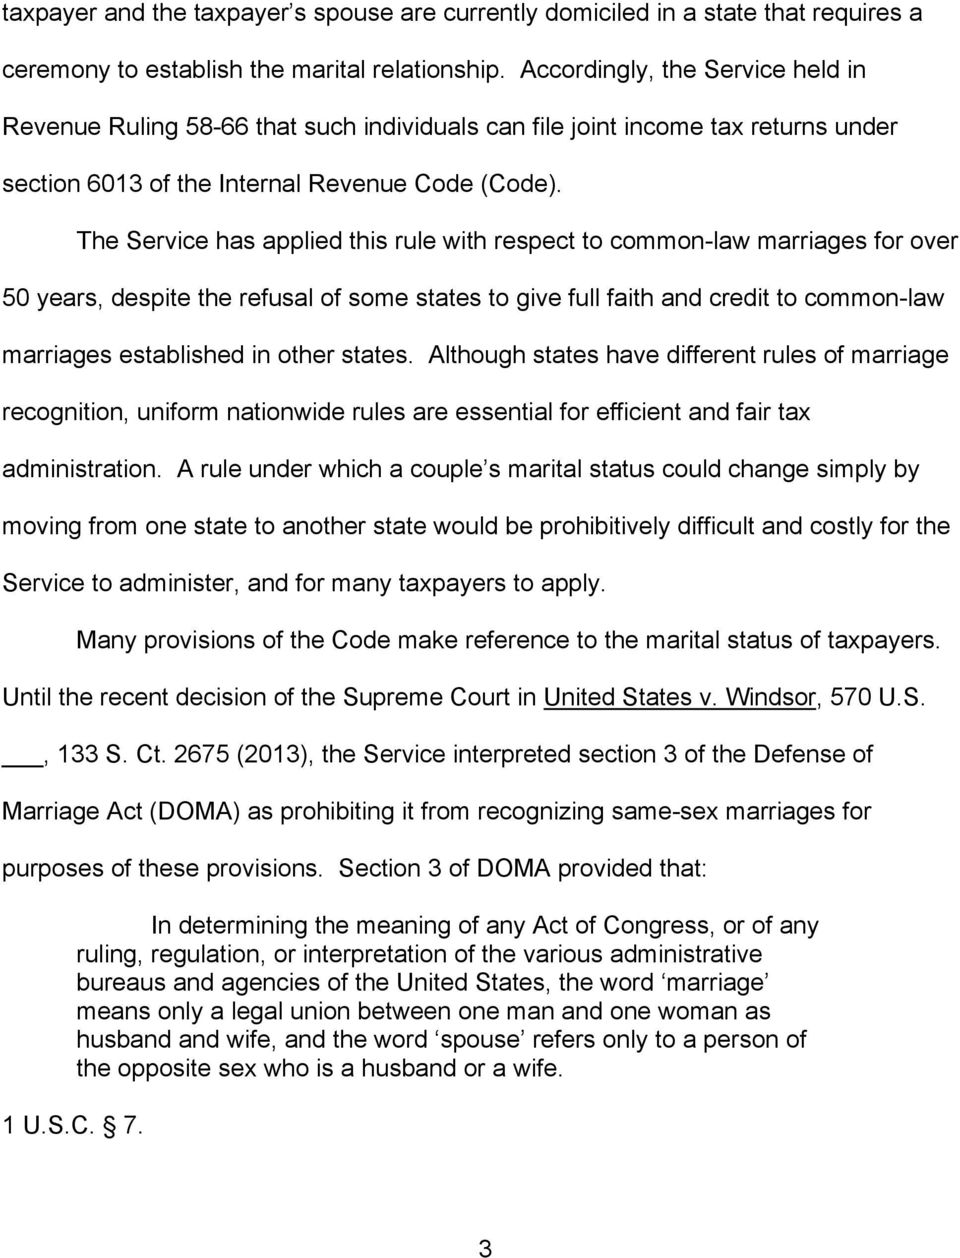 The Service has applied this rule with respect to common-law marriages for over 50 years, despite the refusal of some states to give full faith and credit to common-law marriages established in other